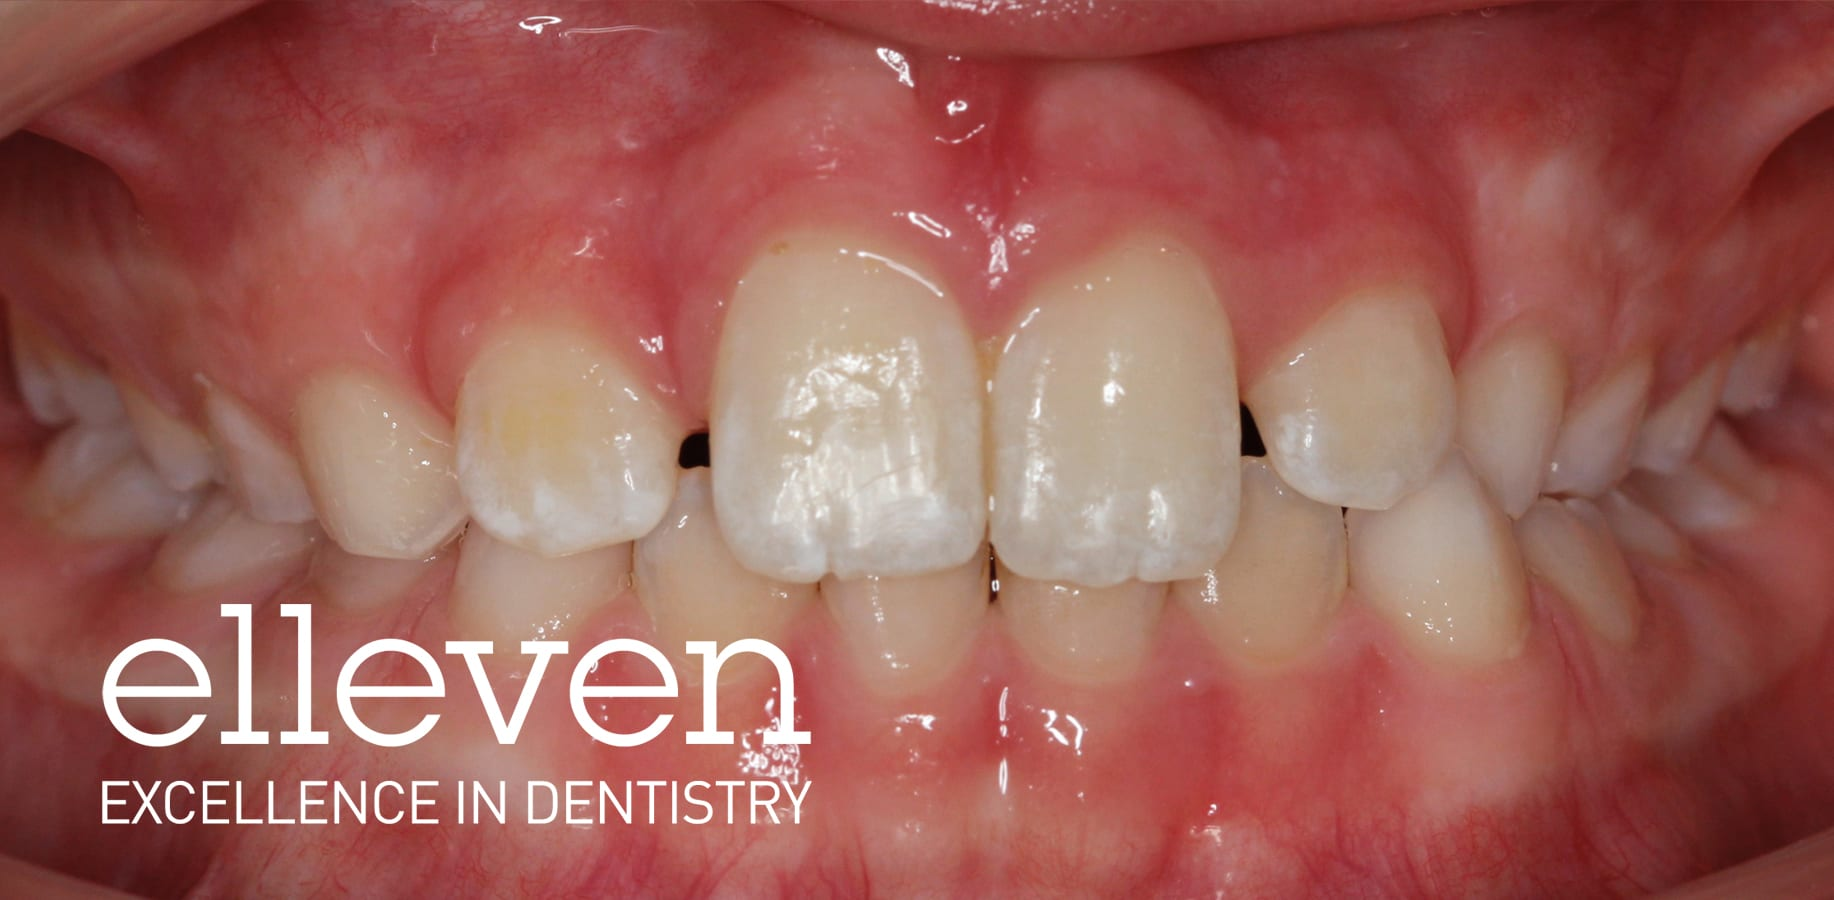 Early Treatment - Elleven Dental